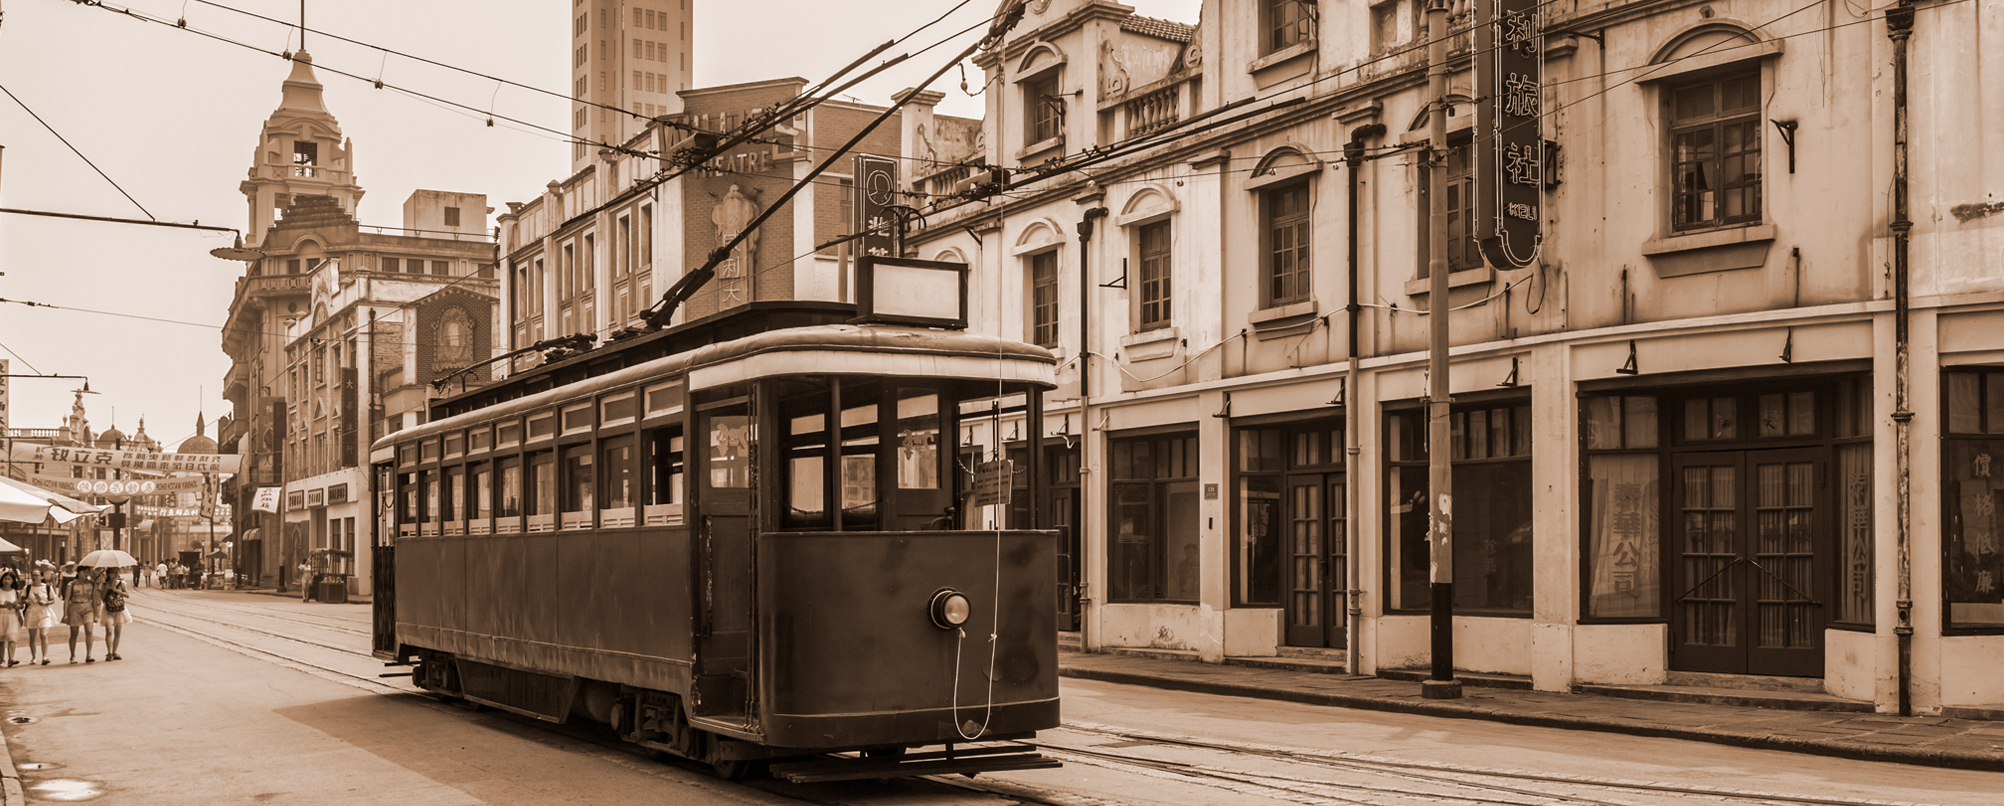 Black and white photo of city tram